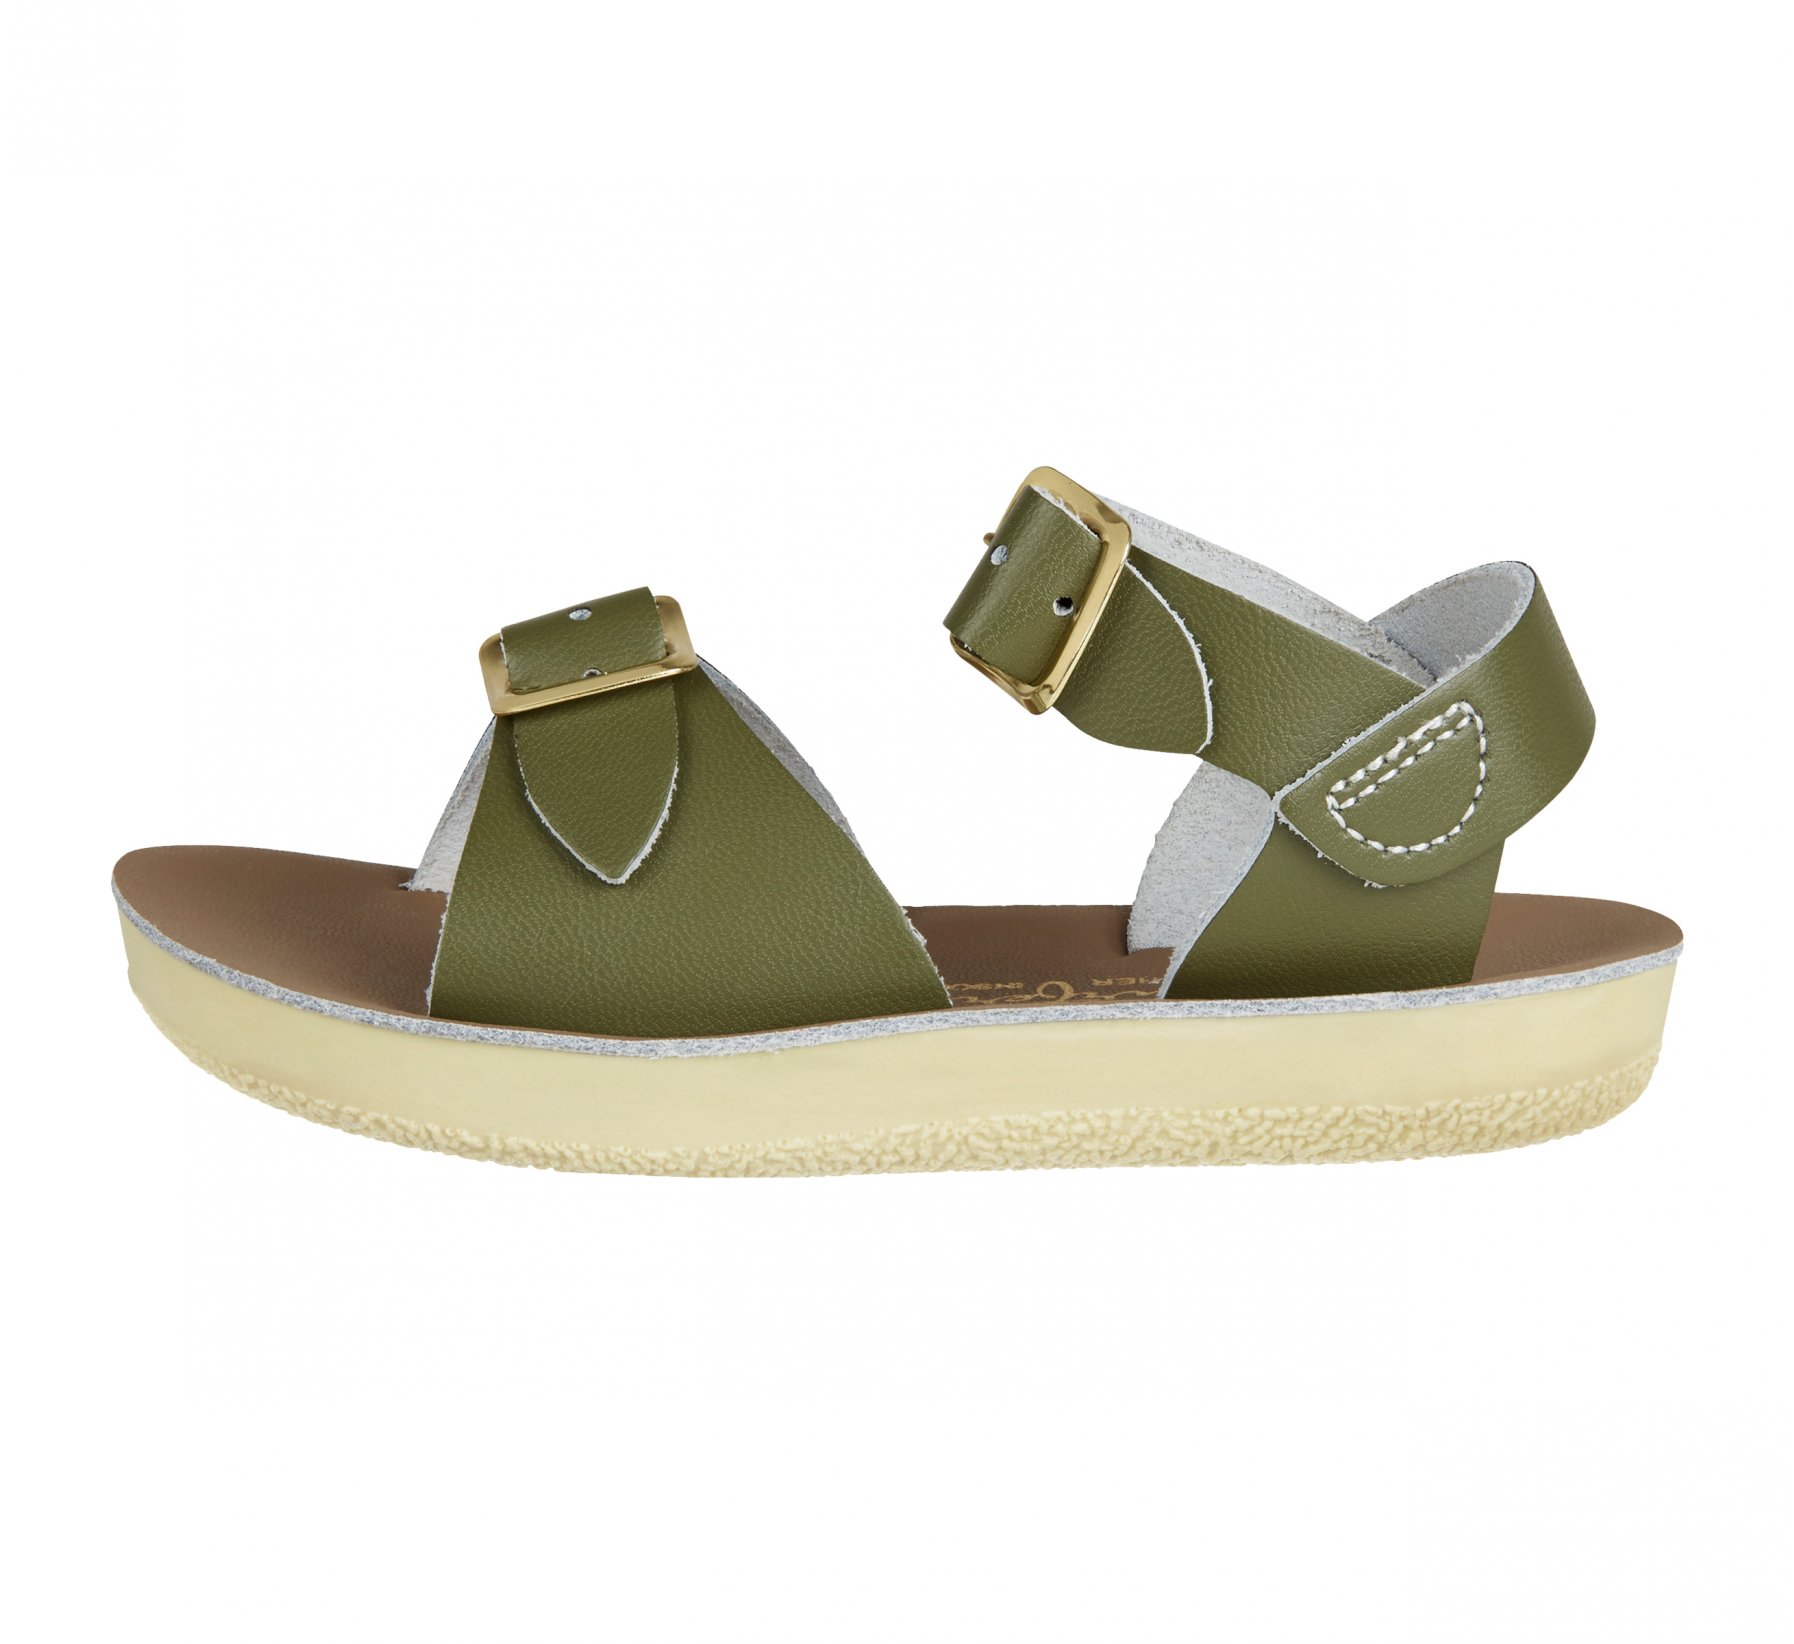 Surfer Hijau Buah Zaitun  - Salt Water Sandals